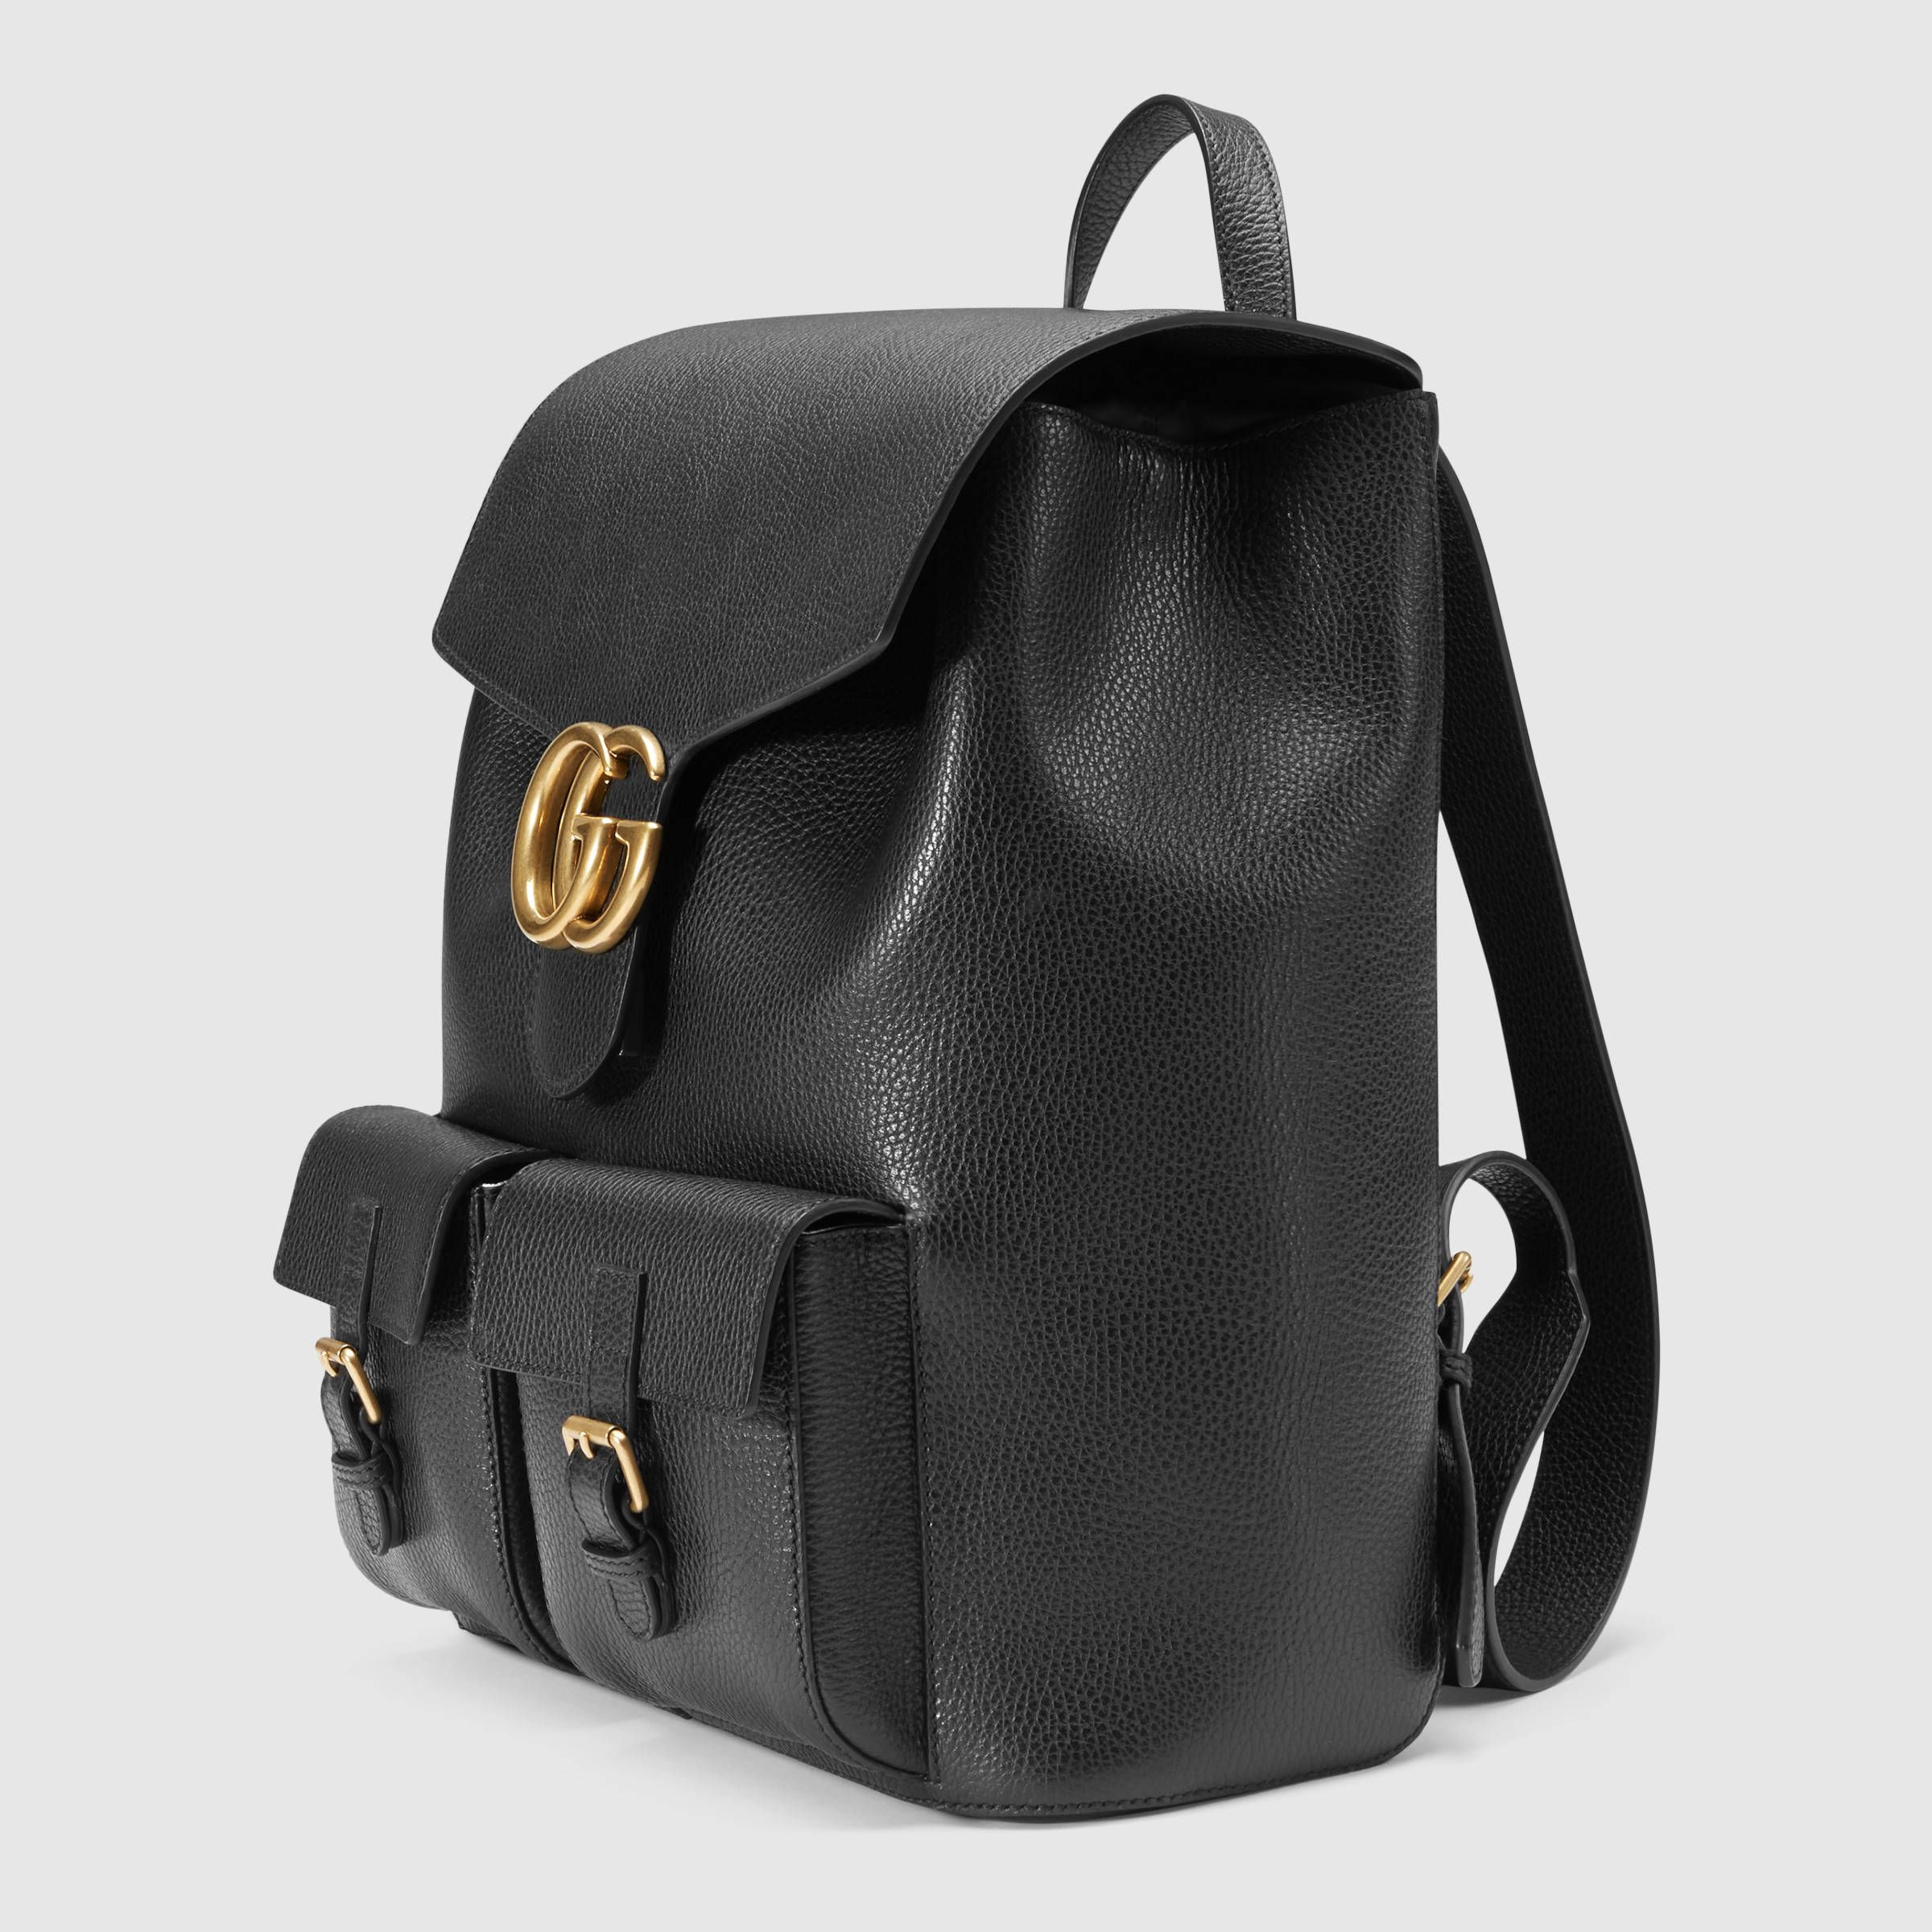 gucci book bags for men. gucci gg marmont leather backpack detail 2 book bags for men